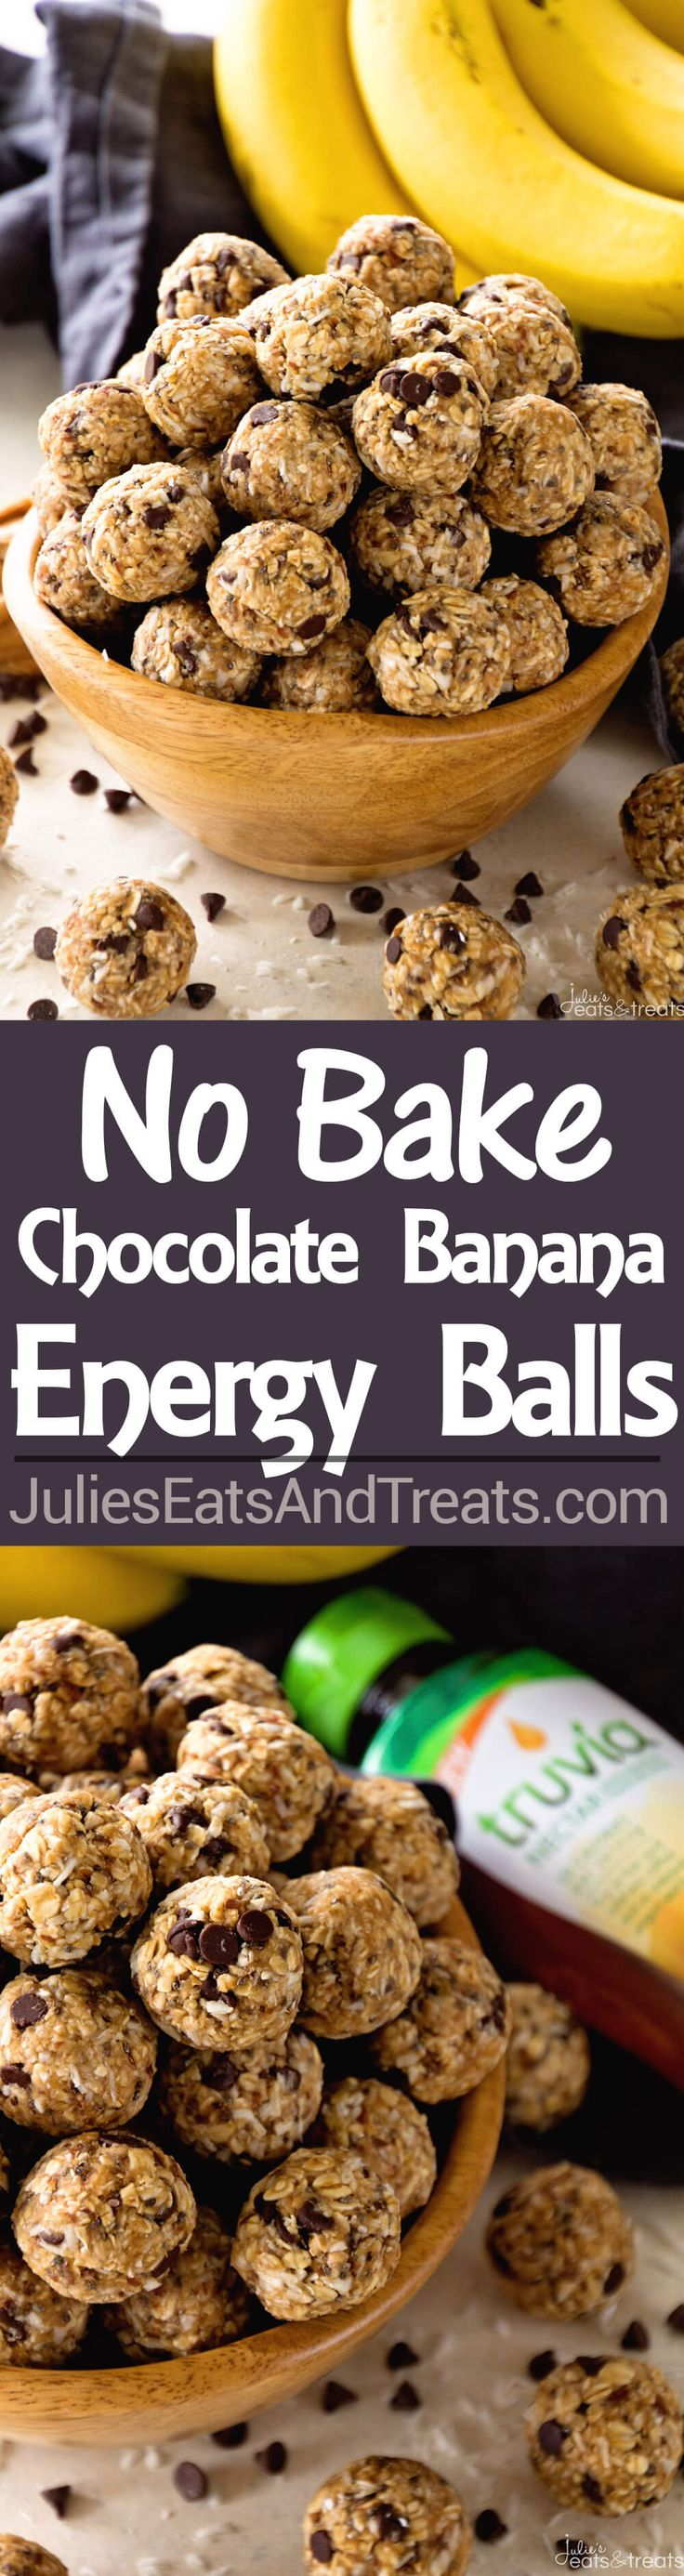 No Bake Chocolate Banana Energy Balls Recipe ~ Delicious Recipe for Energy Bites Loaded with Chocolate Chips, Banana, Coconut, Oats, Flaxseed, Chia Seeds and Spiced with Cinnamon! ~ http://www.julieseatsandtreats.com